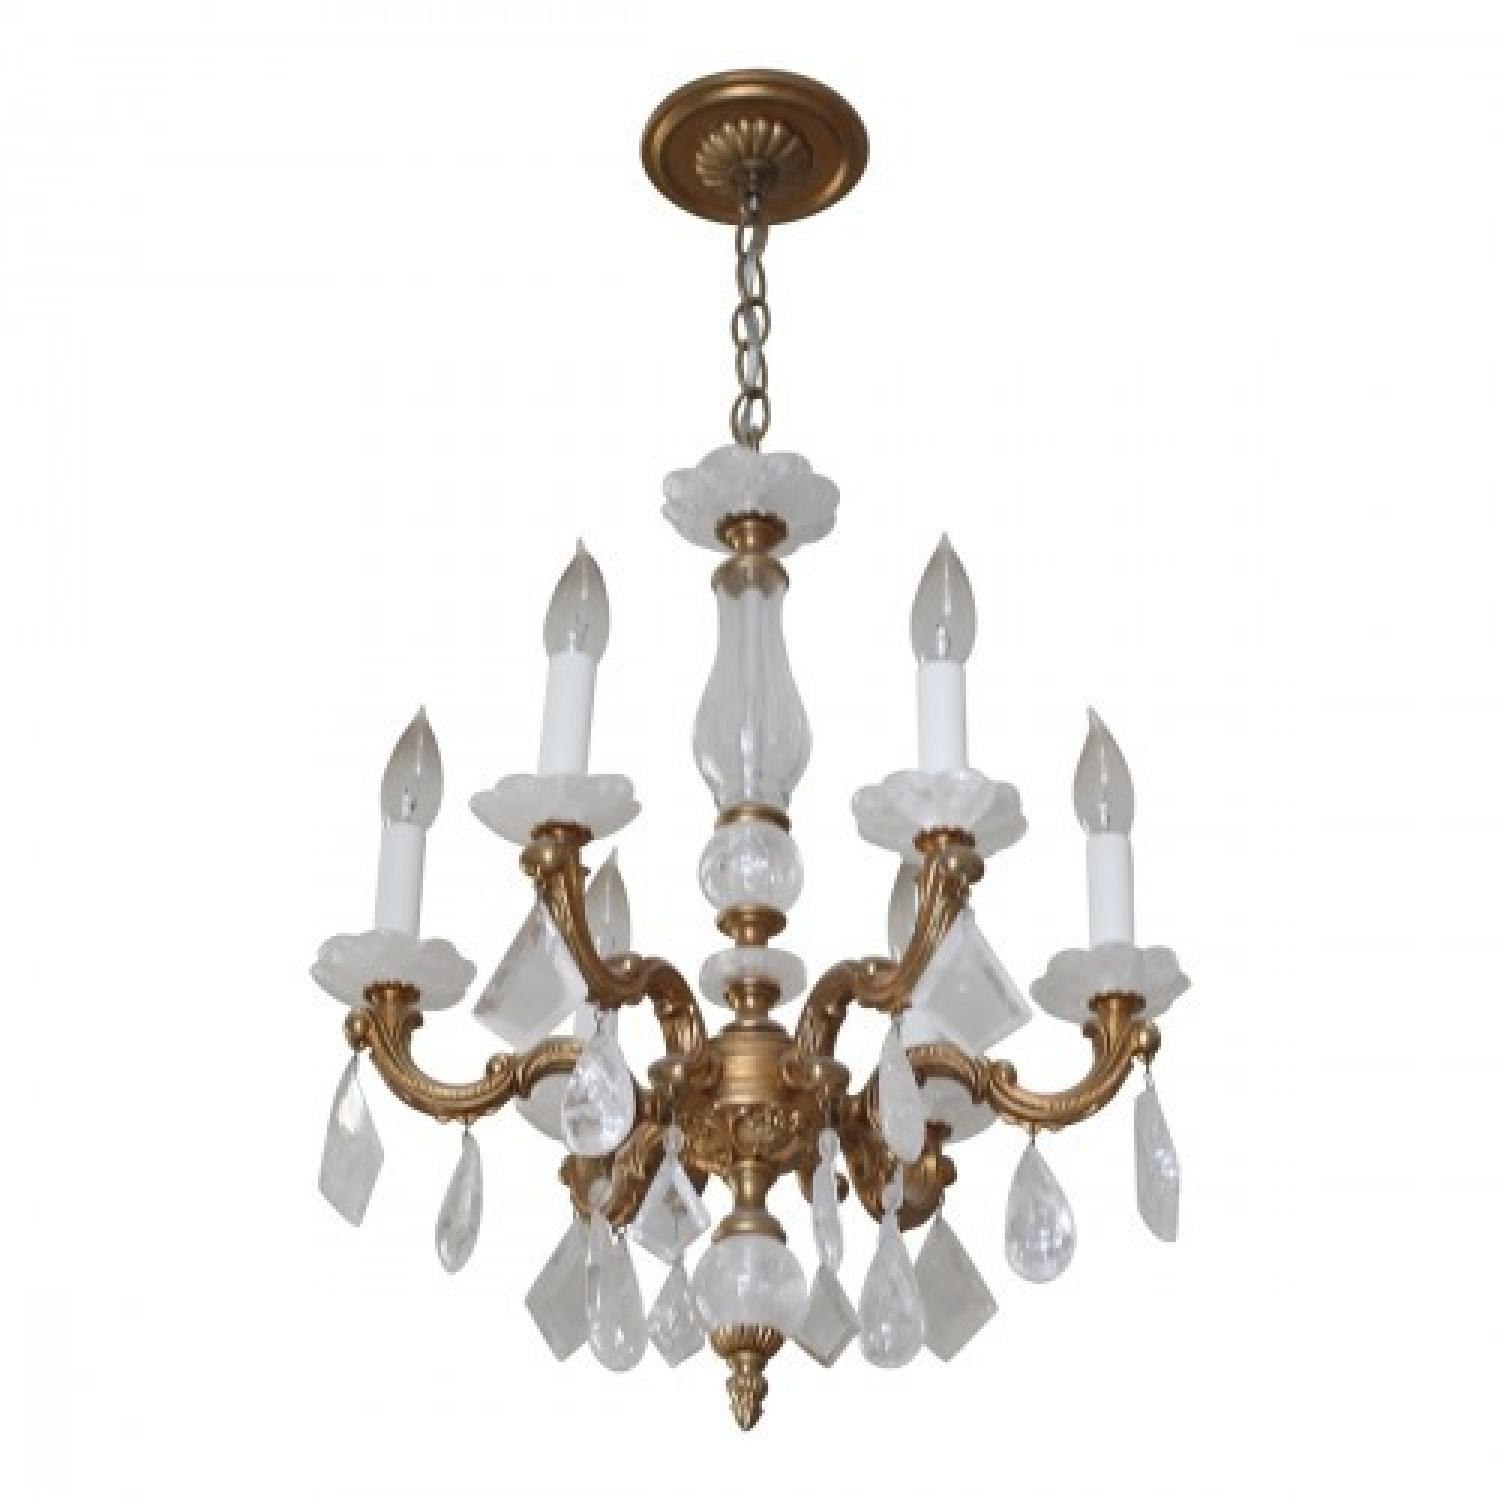 ABC Carpet & Home Brass & Glass Rock Crystal Chandelier - image-0